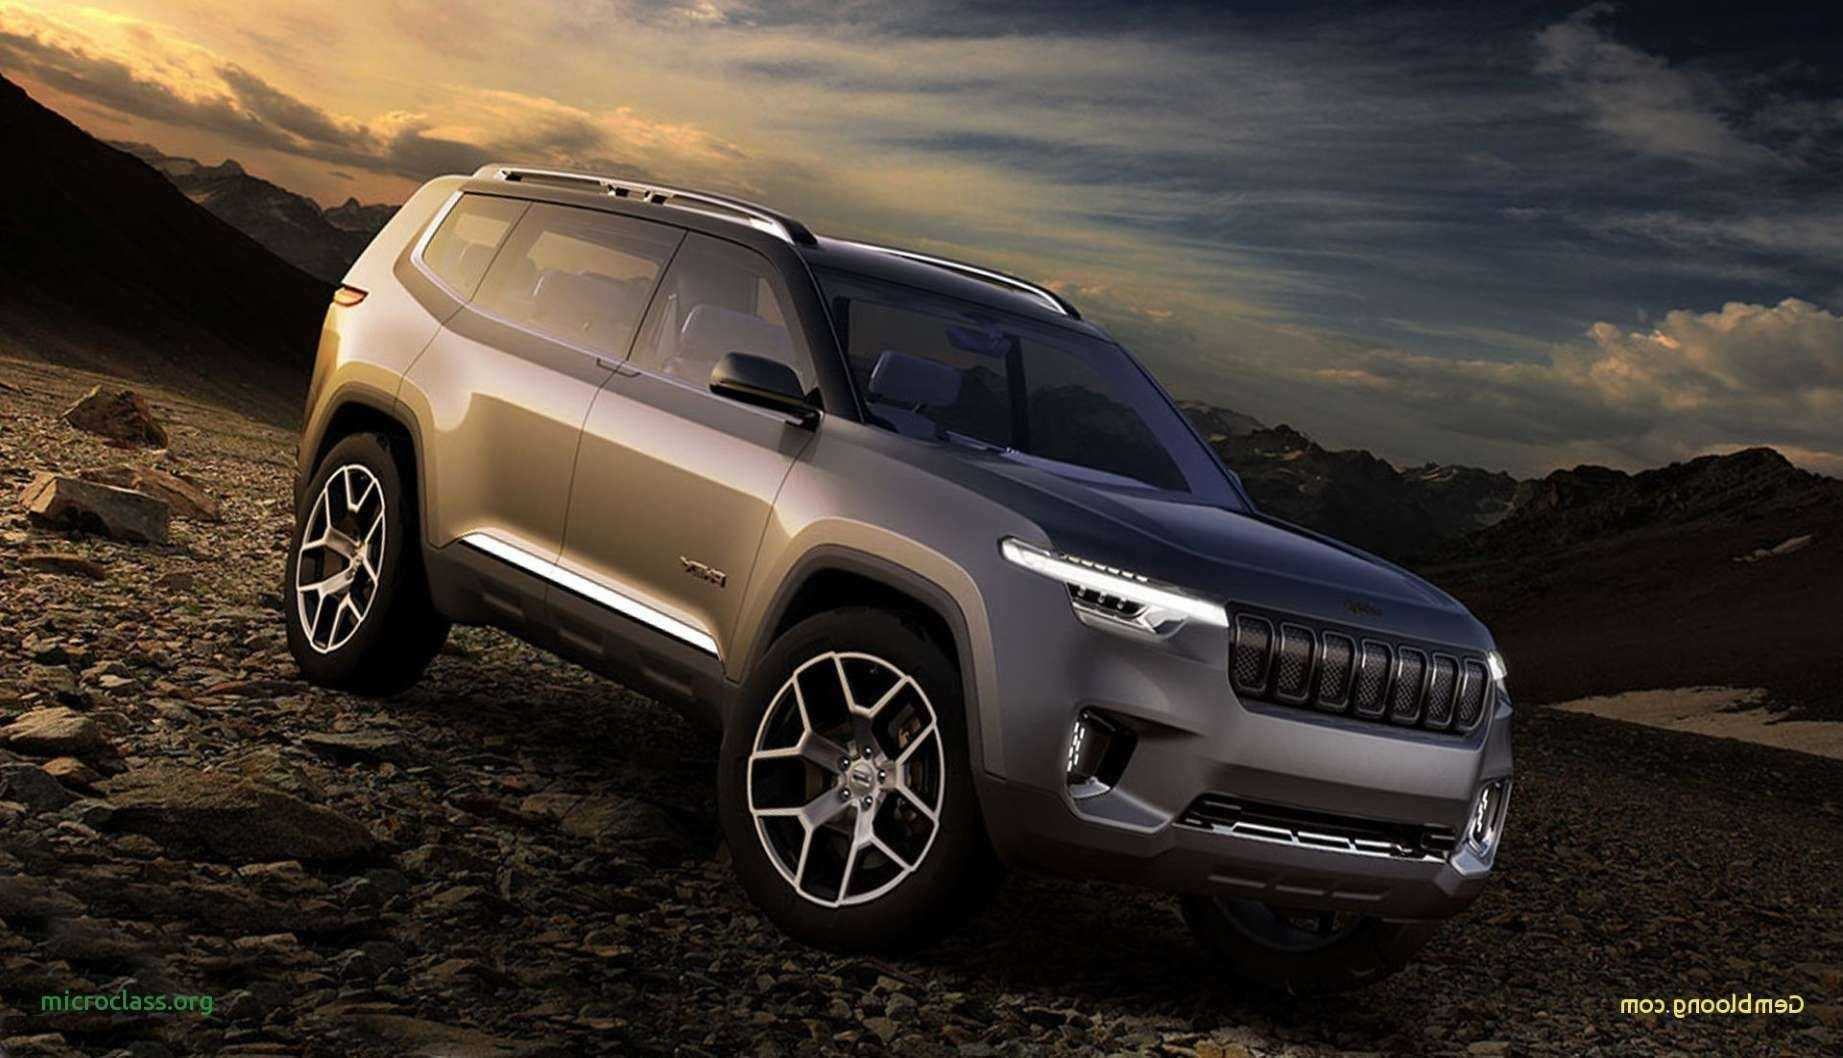 95 The 2020 Jeep Grand Cherokee Srt8 Specs